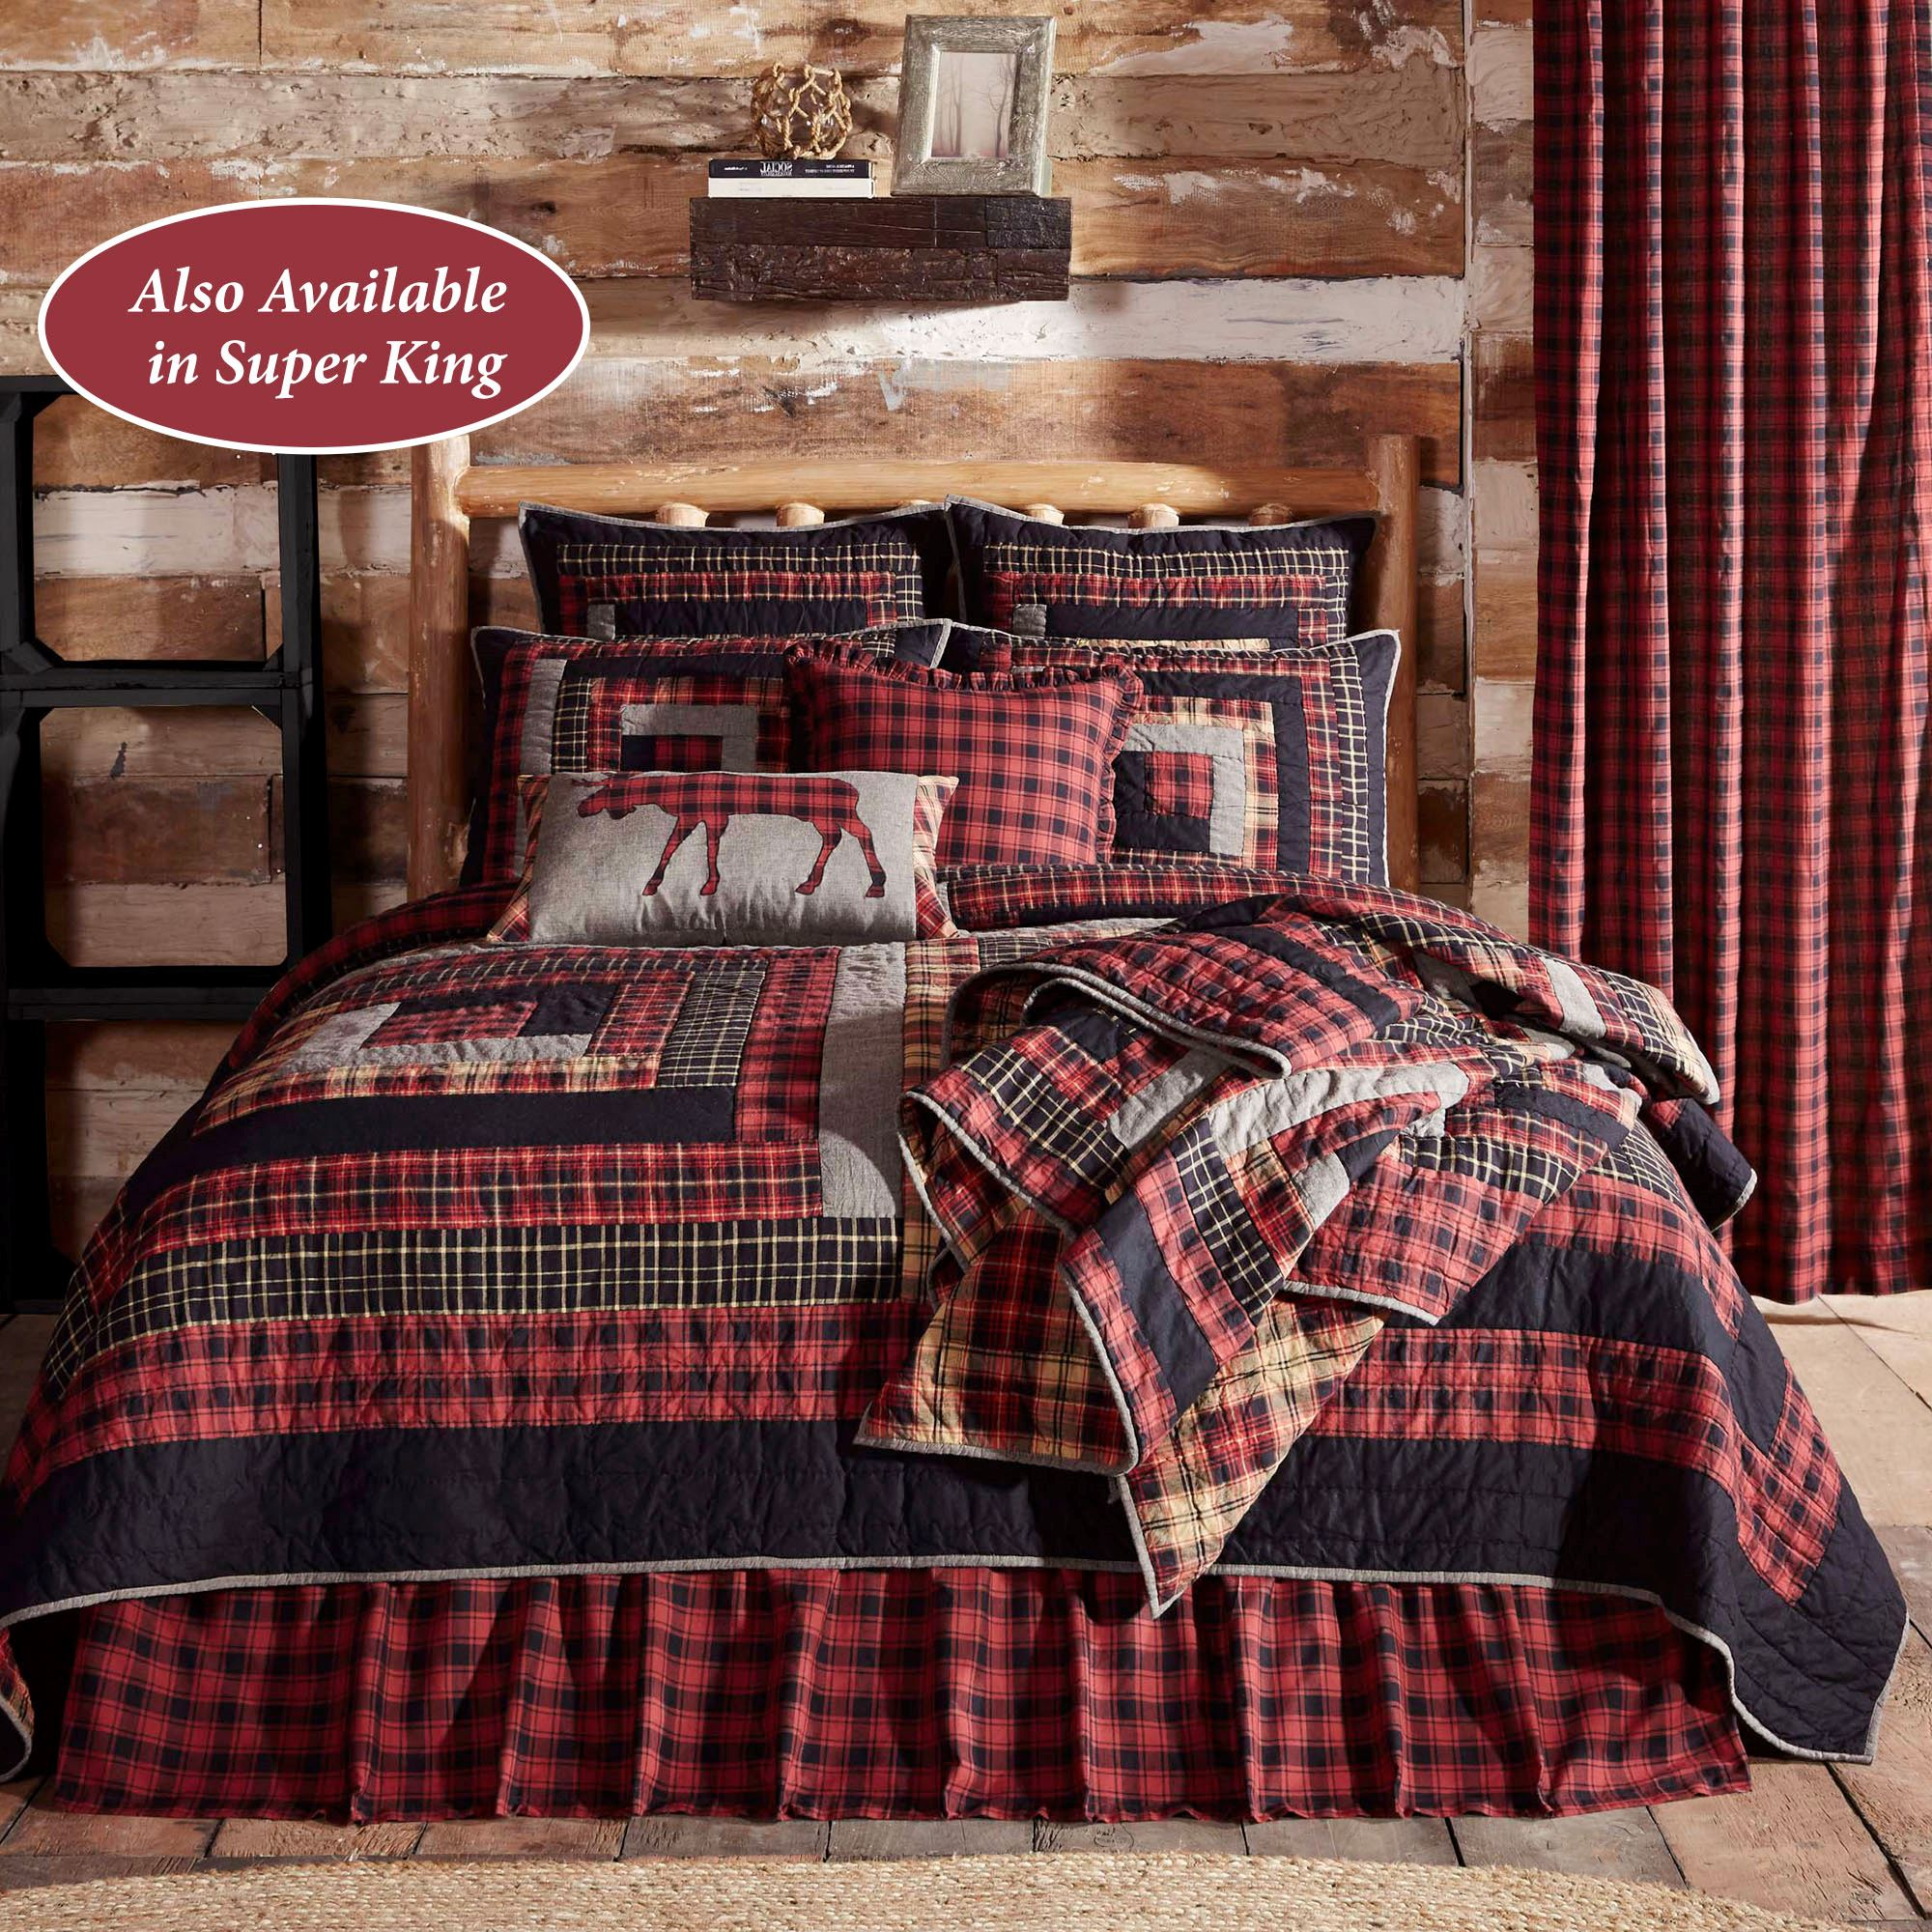 Cumberland Rustic Red Plaid Quilt Bedding by Oak & Asher : plaid comforters and quilts - Adamdwight.com